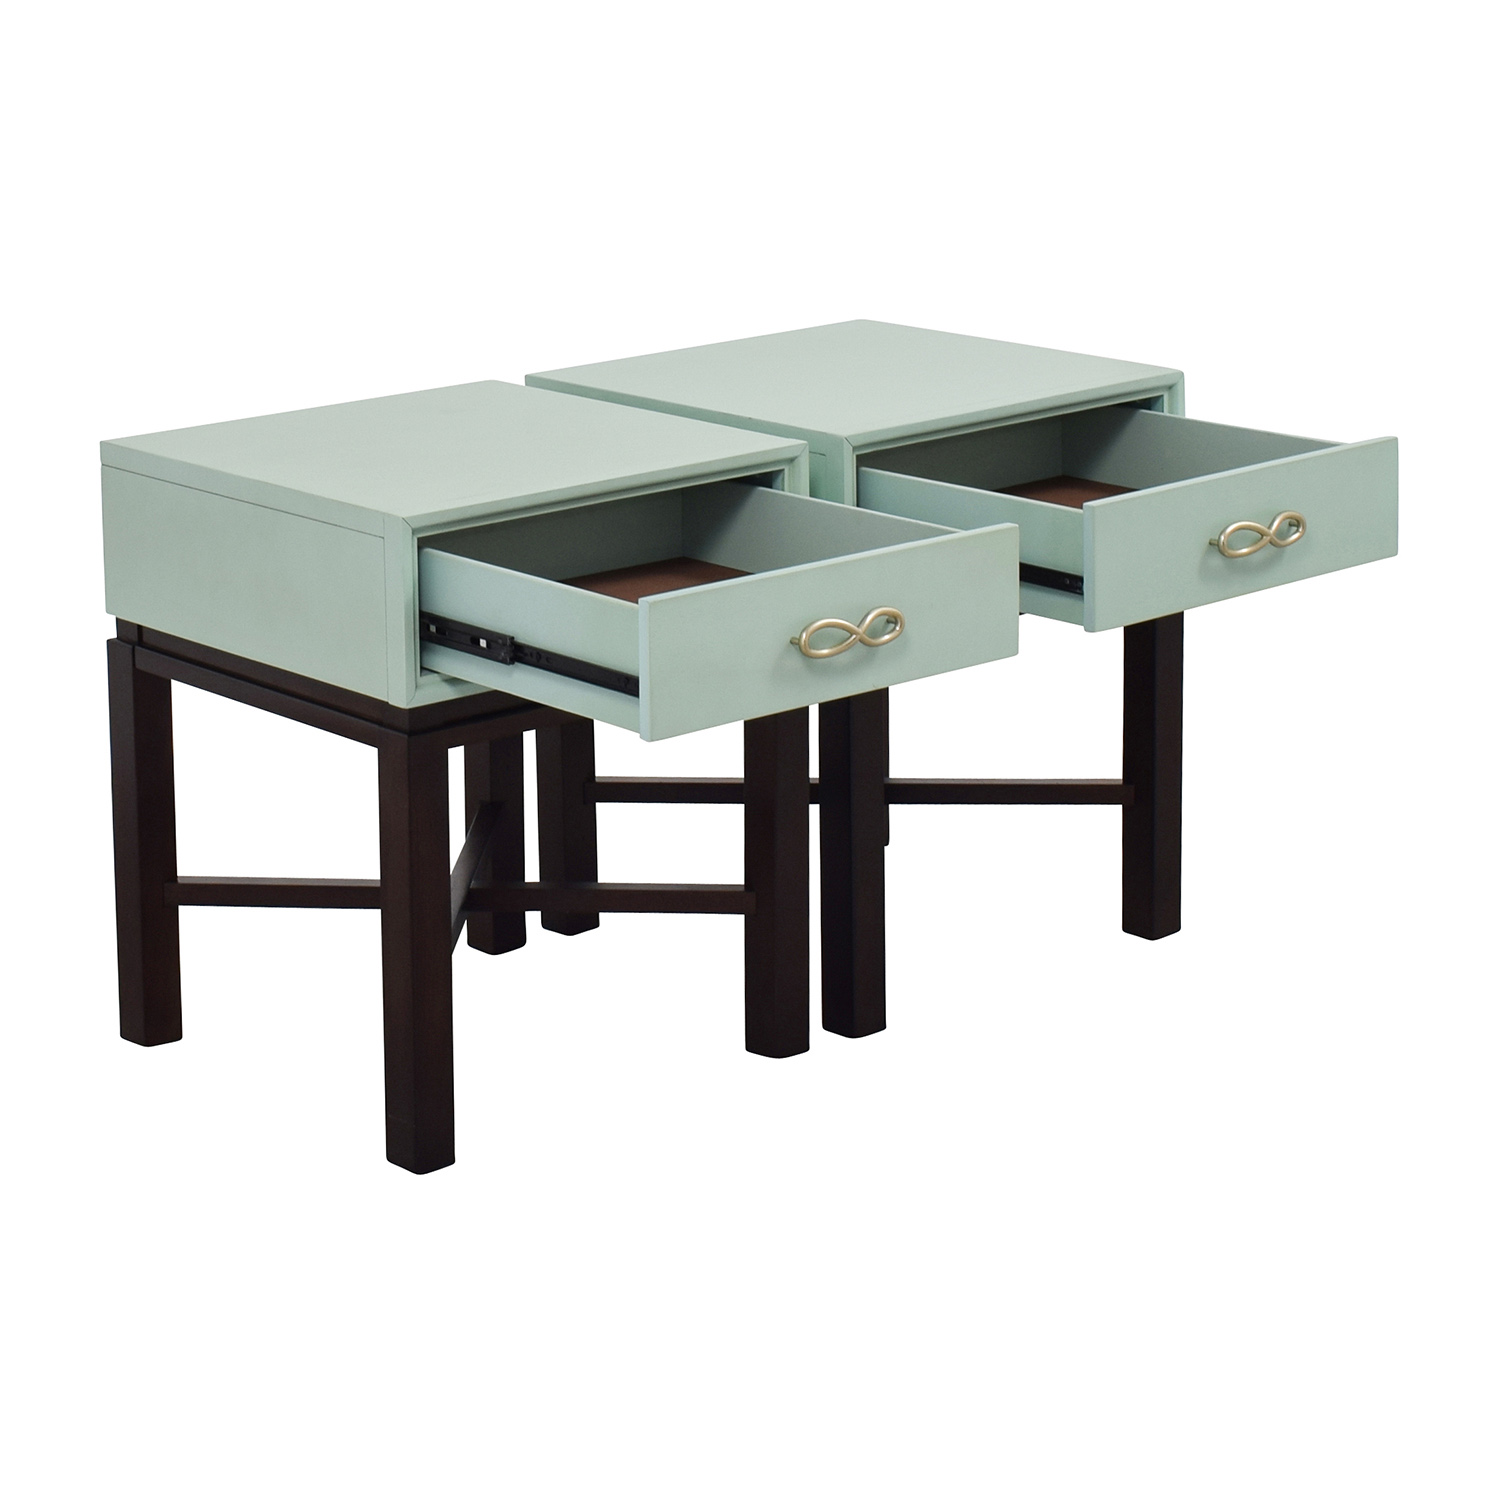 off  chairside green end side tables  tables -  chairside green end side tables